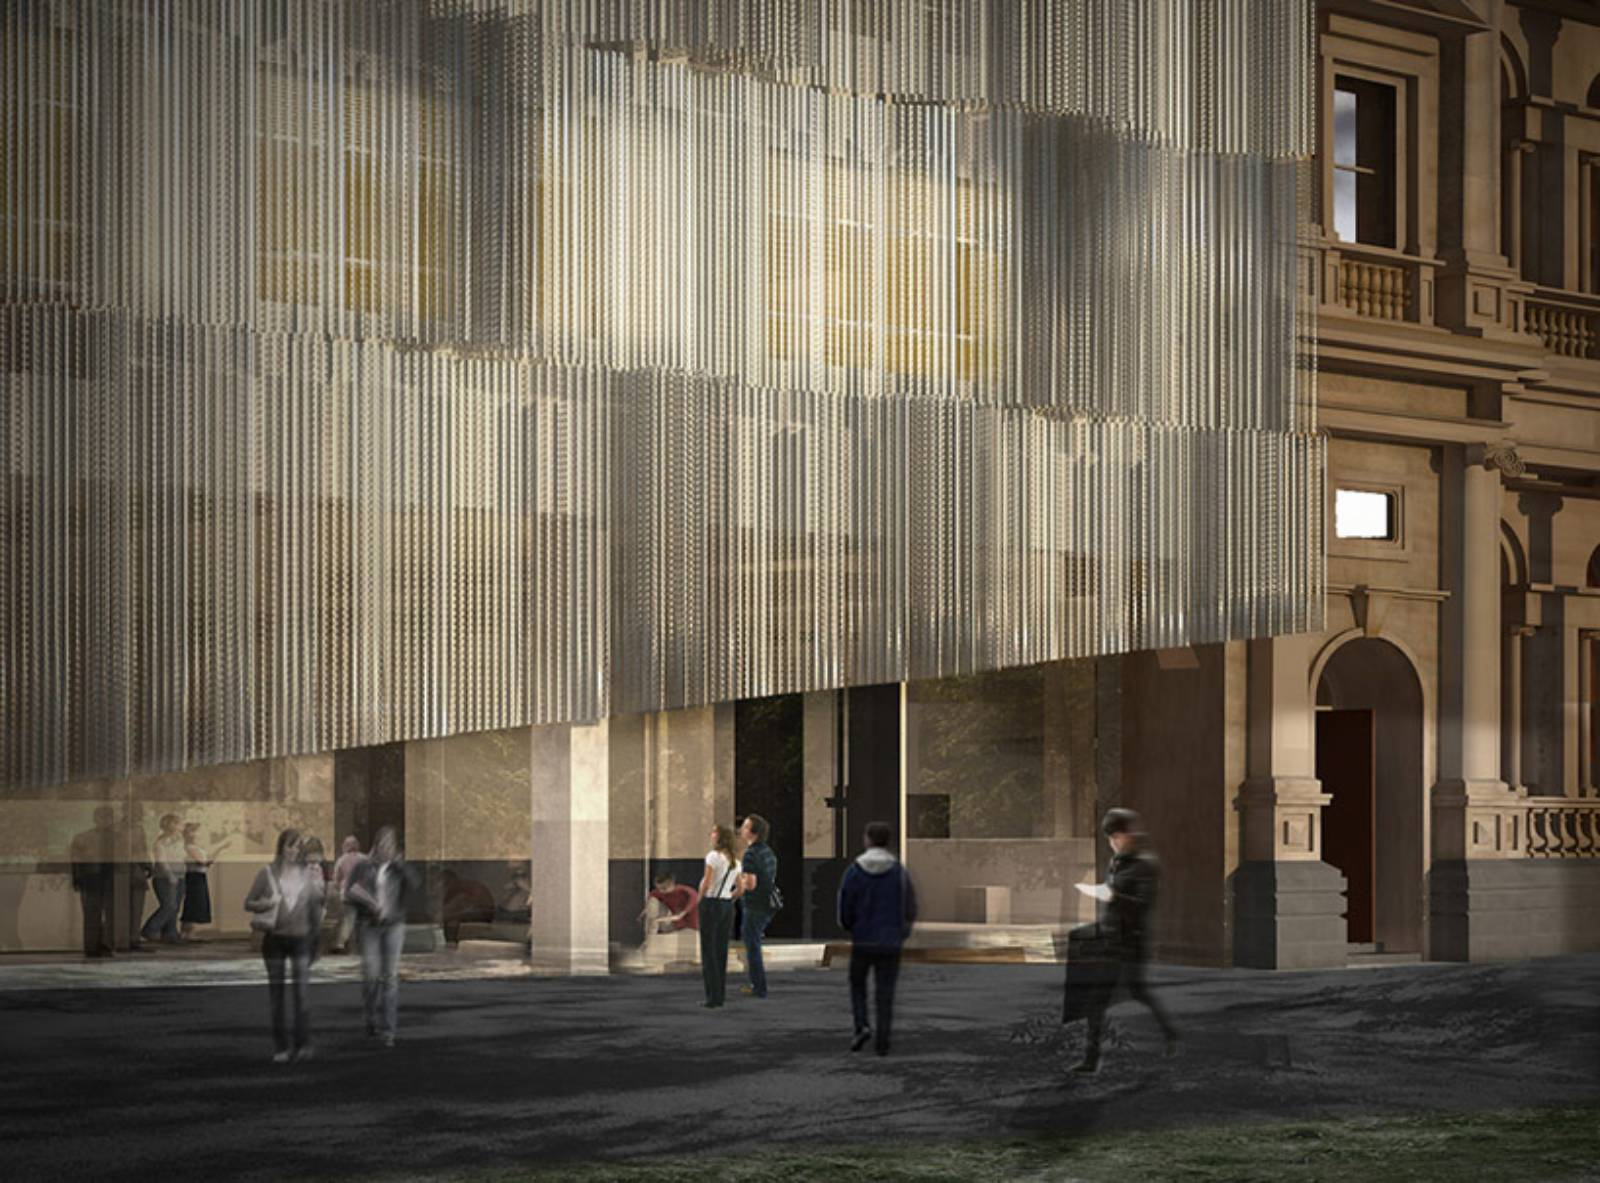 university of melbourne by jwa nadaaa